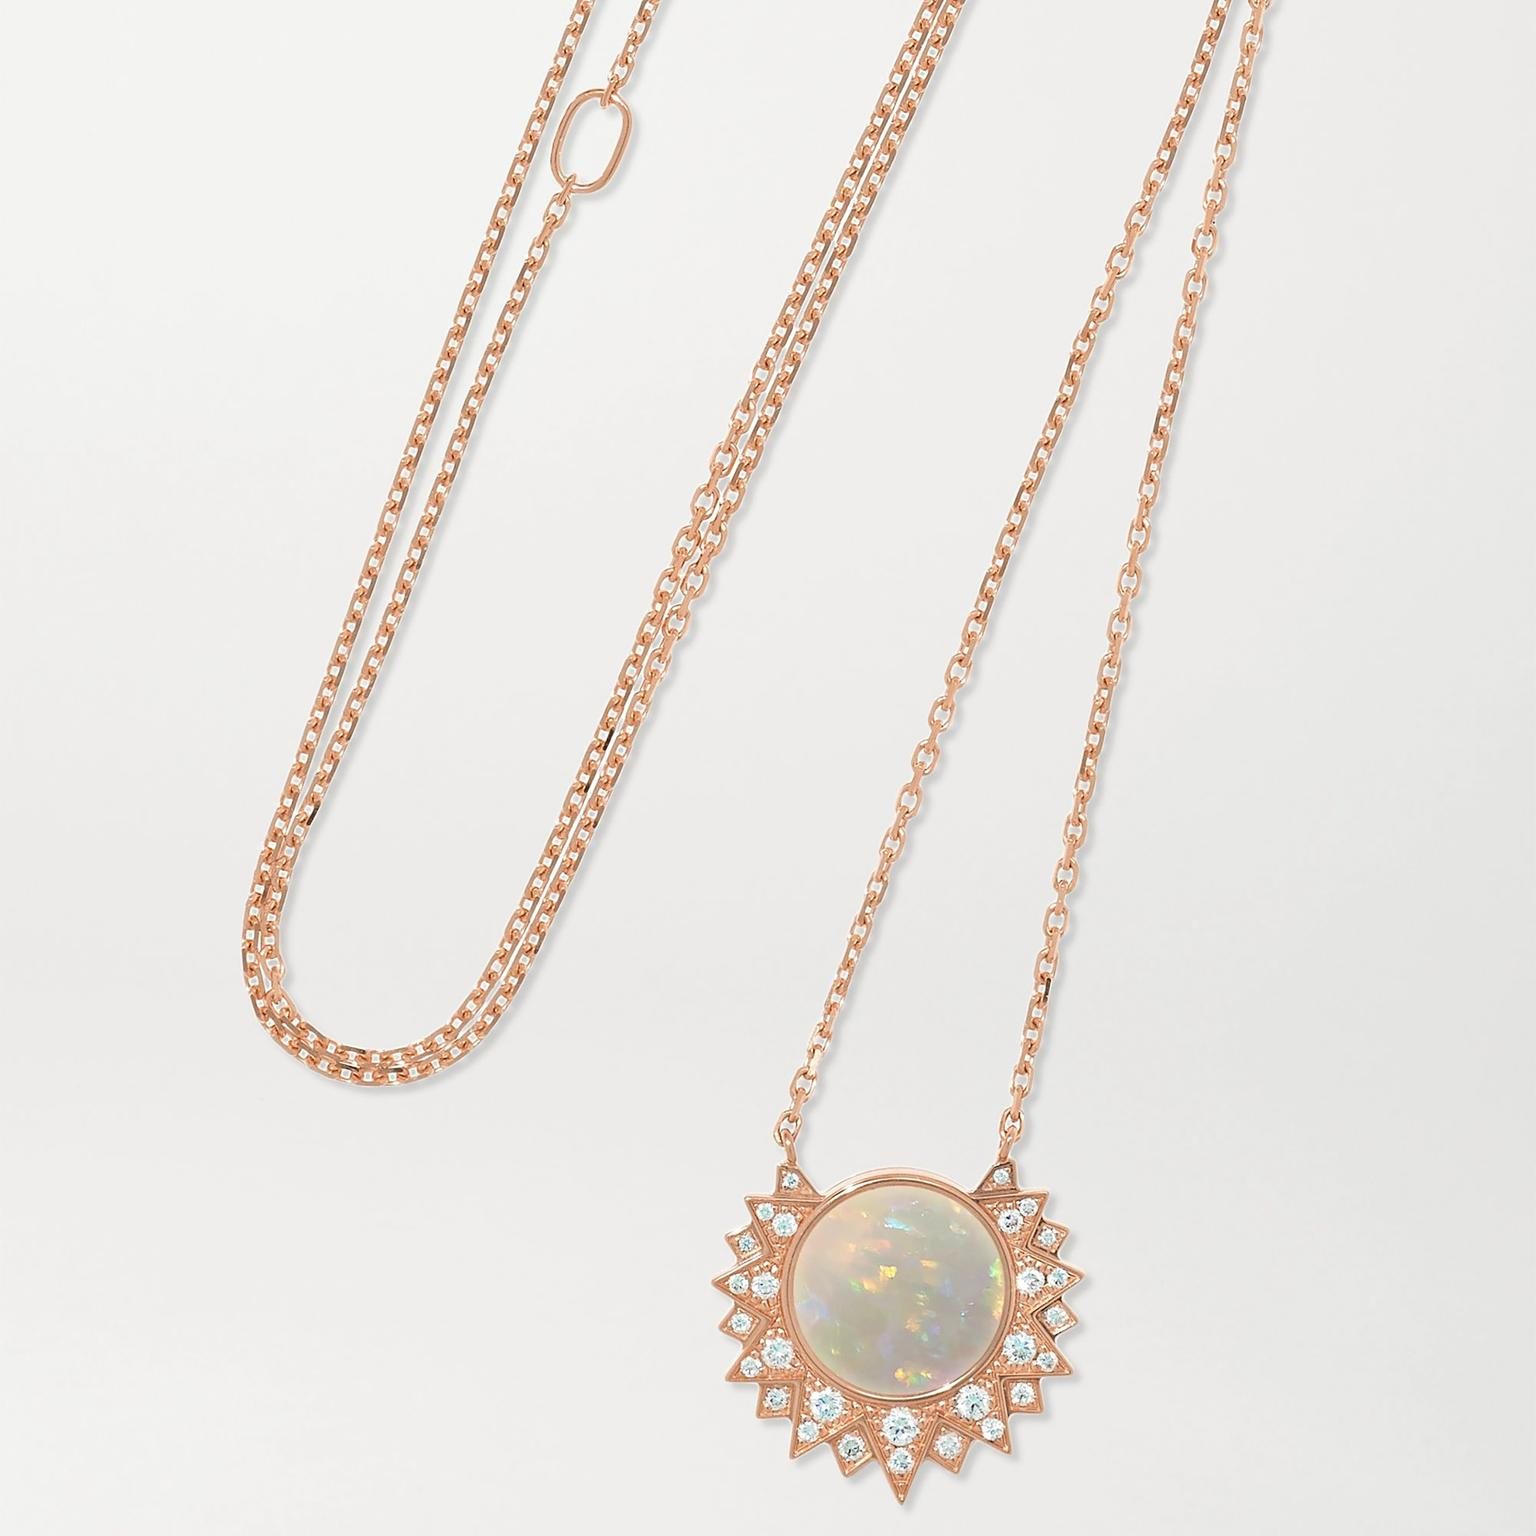 Sunlight opal necklace by Piaget